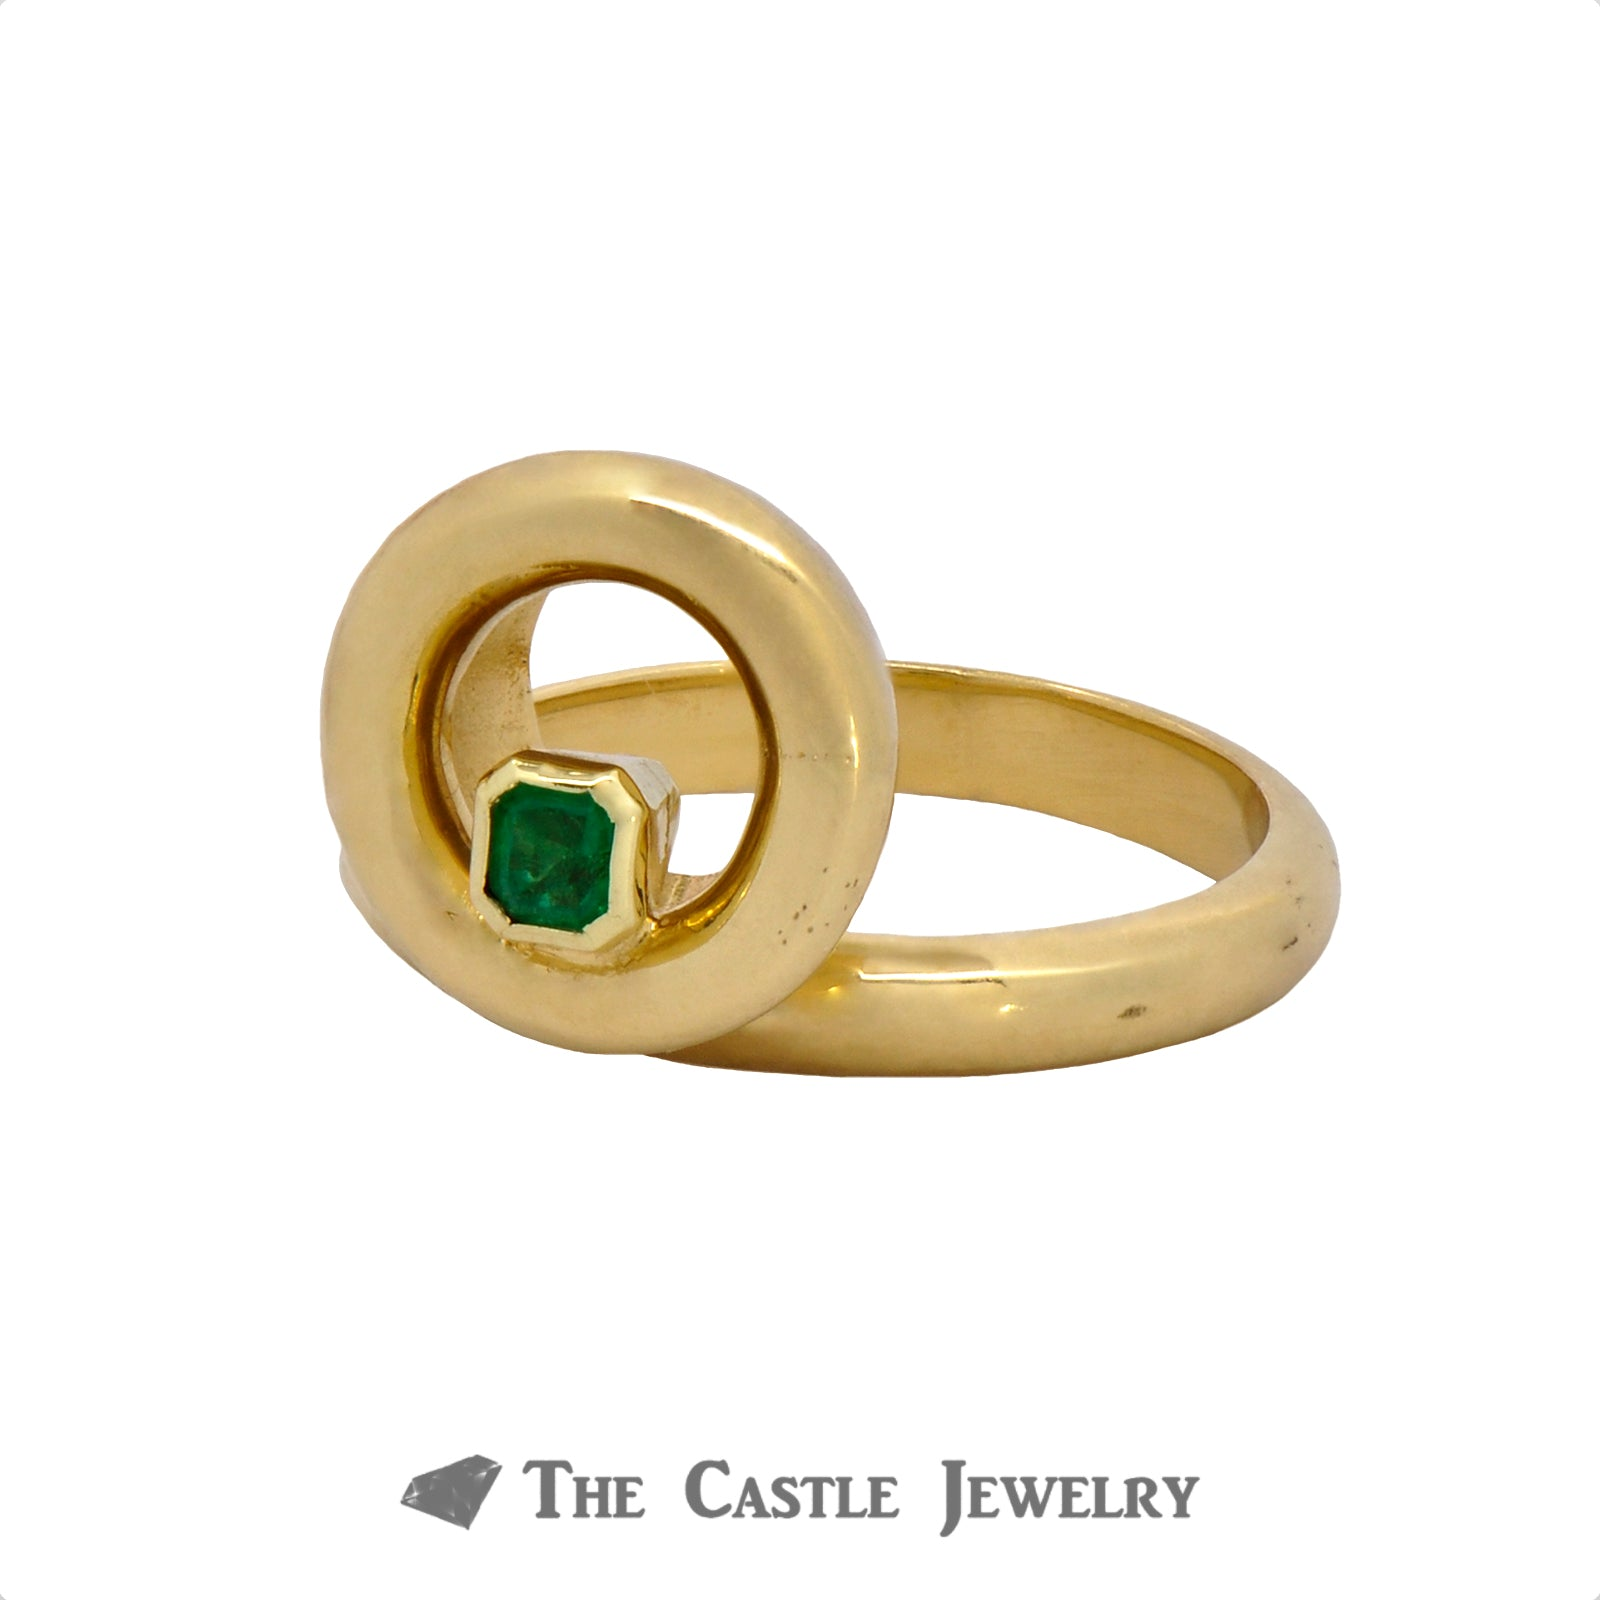 Unique Circle Designed Ring with Emerald Cut Emerald Crafted in 18k Yellow Gold-2